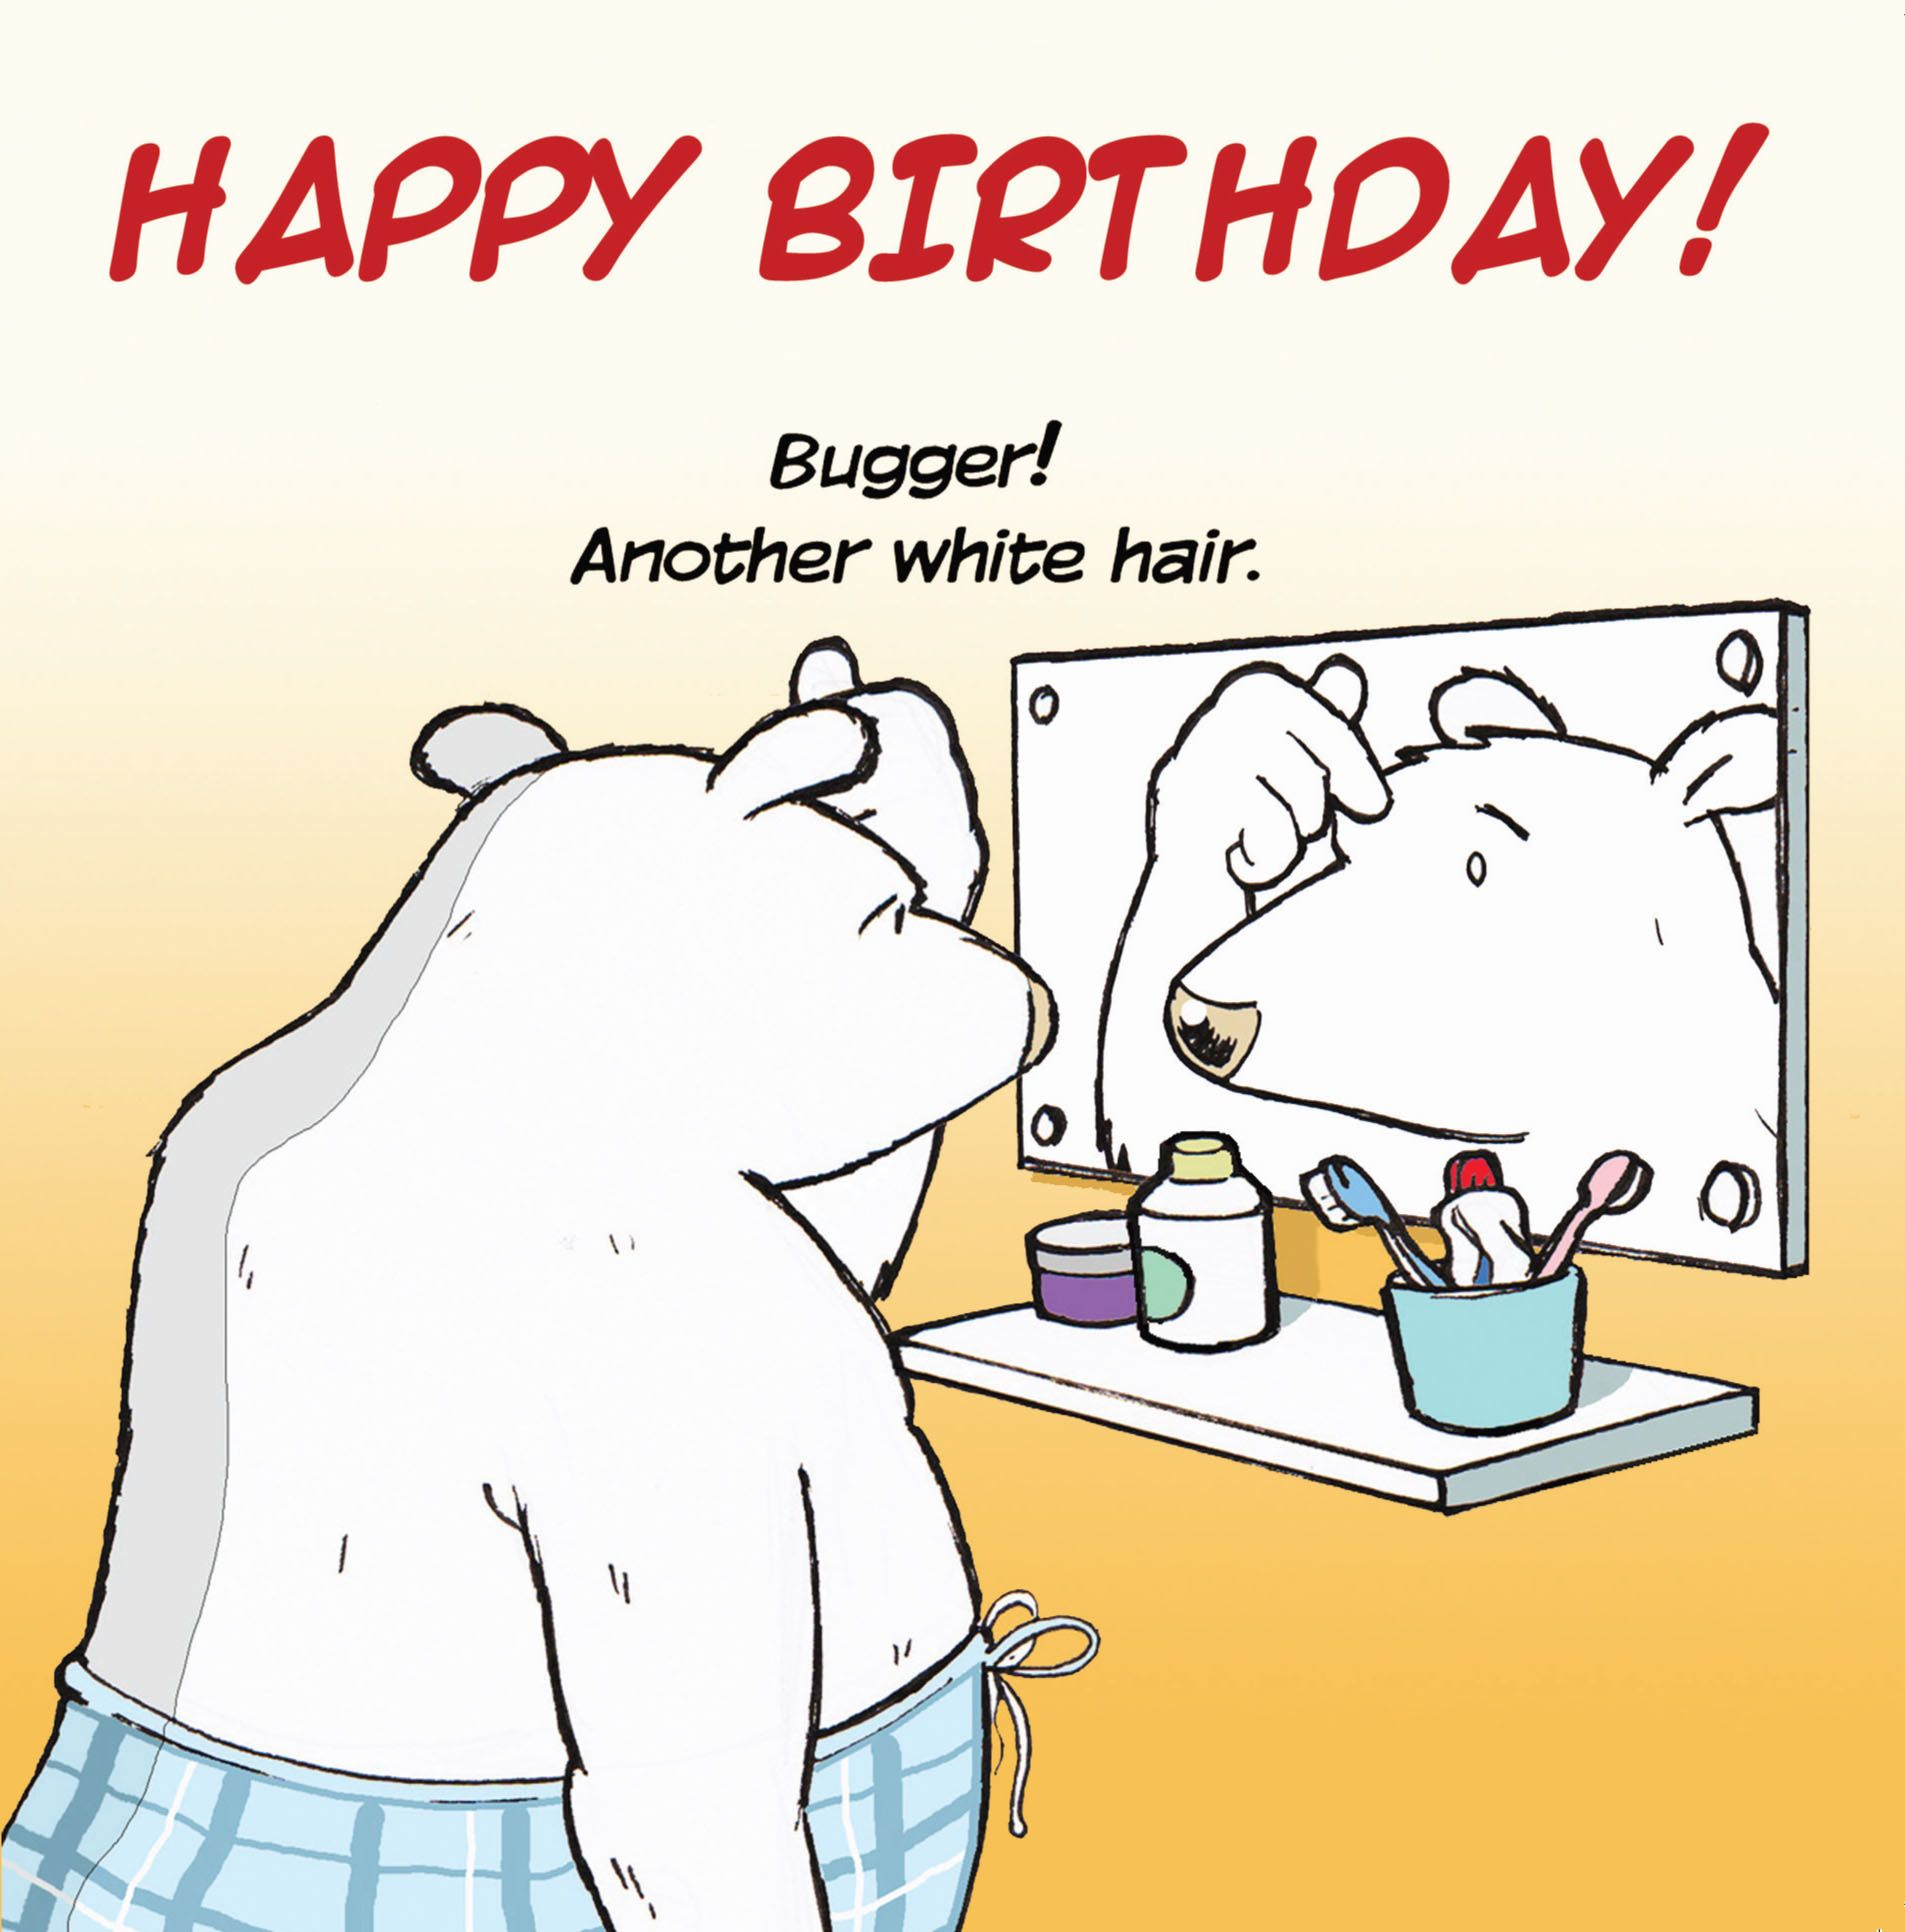 funny birthday card pics ; tw208-funny-birthday-card-another-white-hair-5292-p